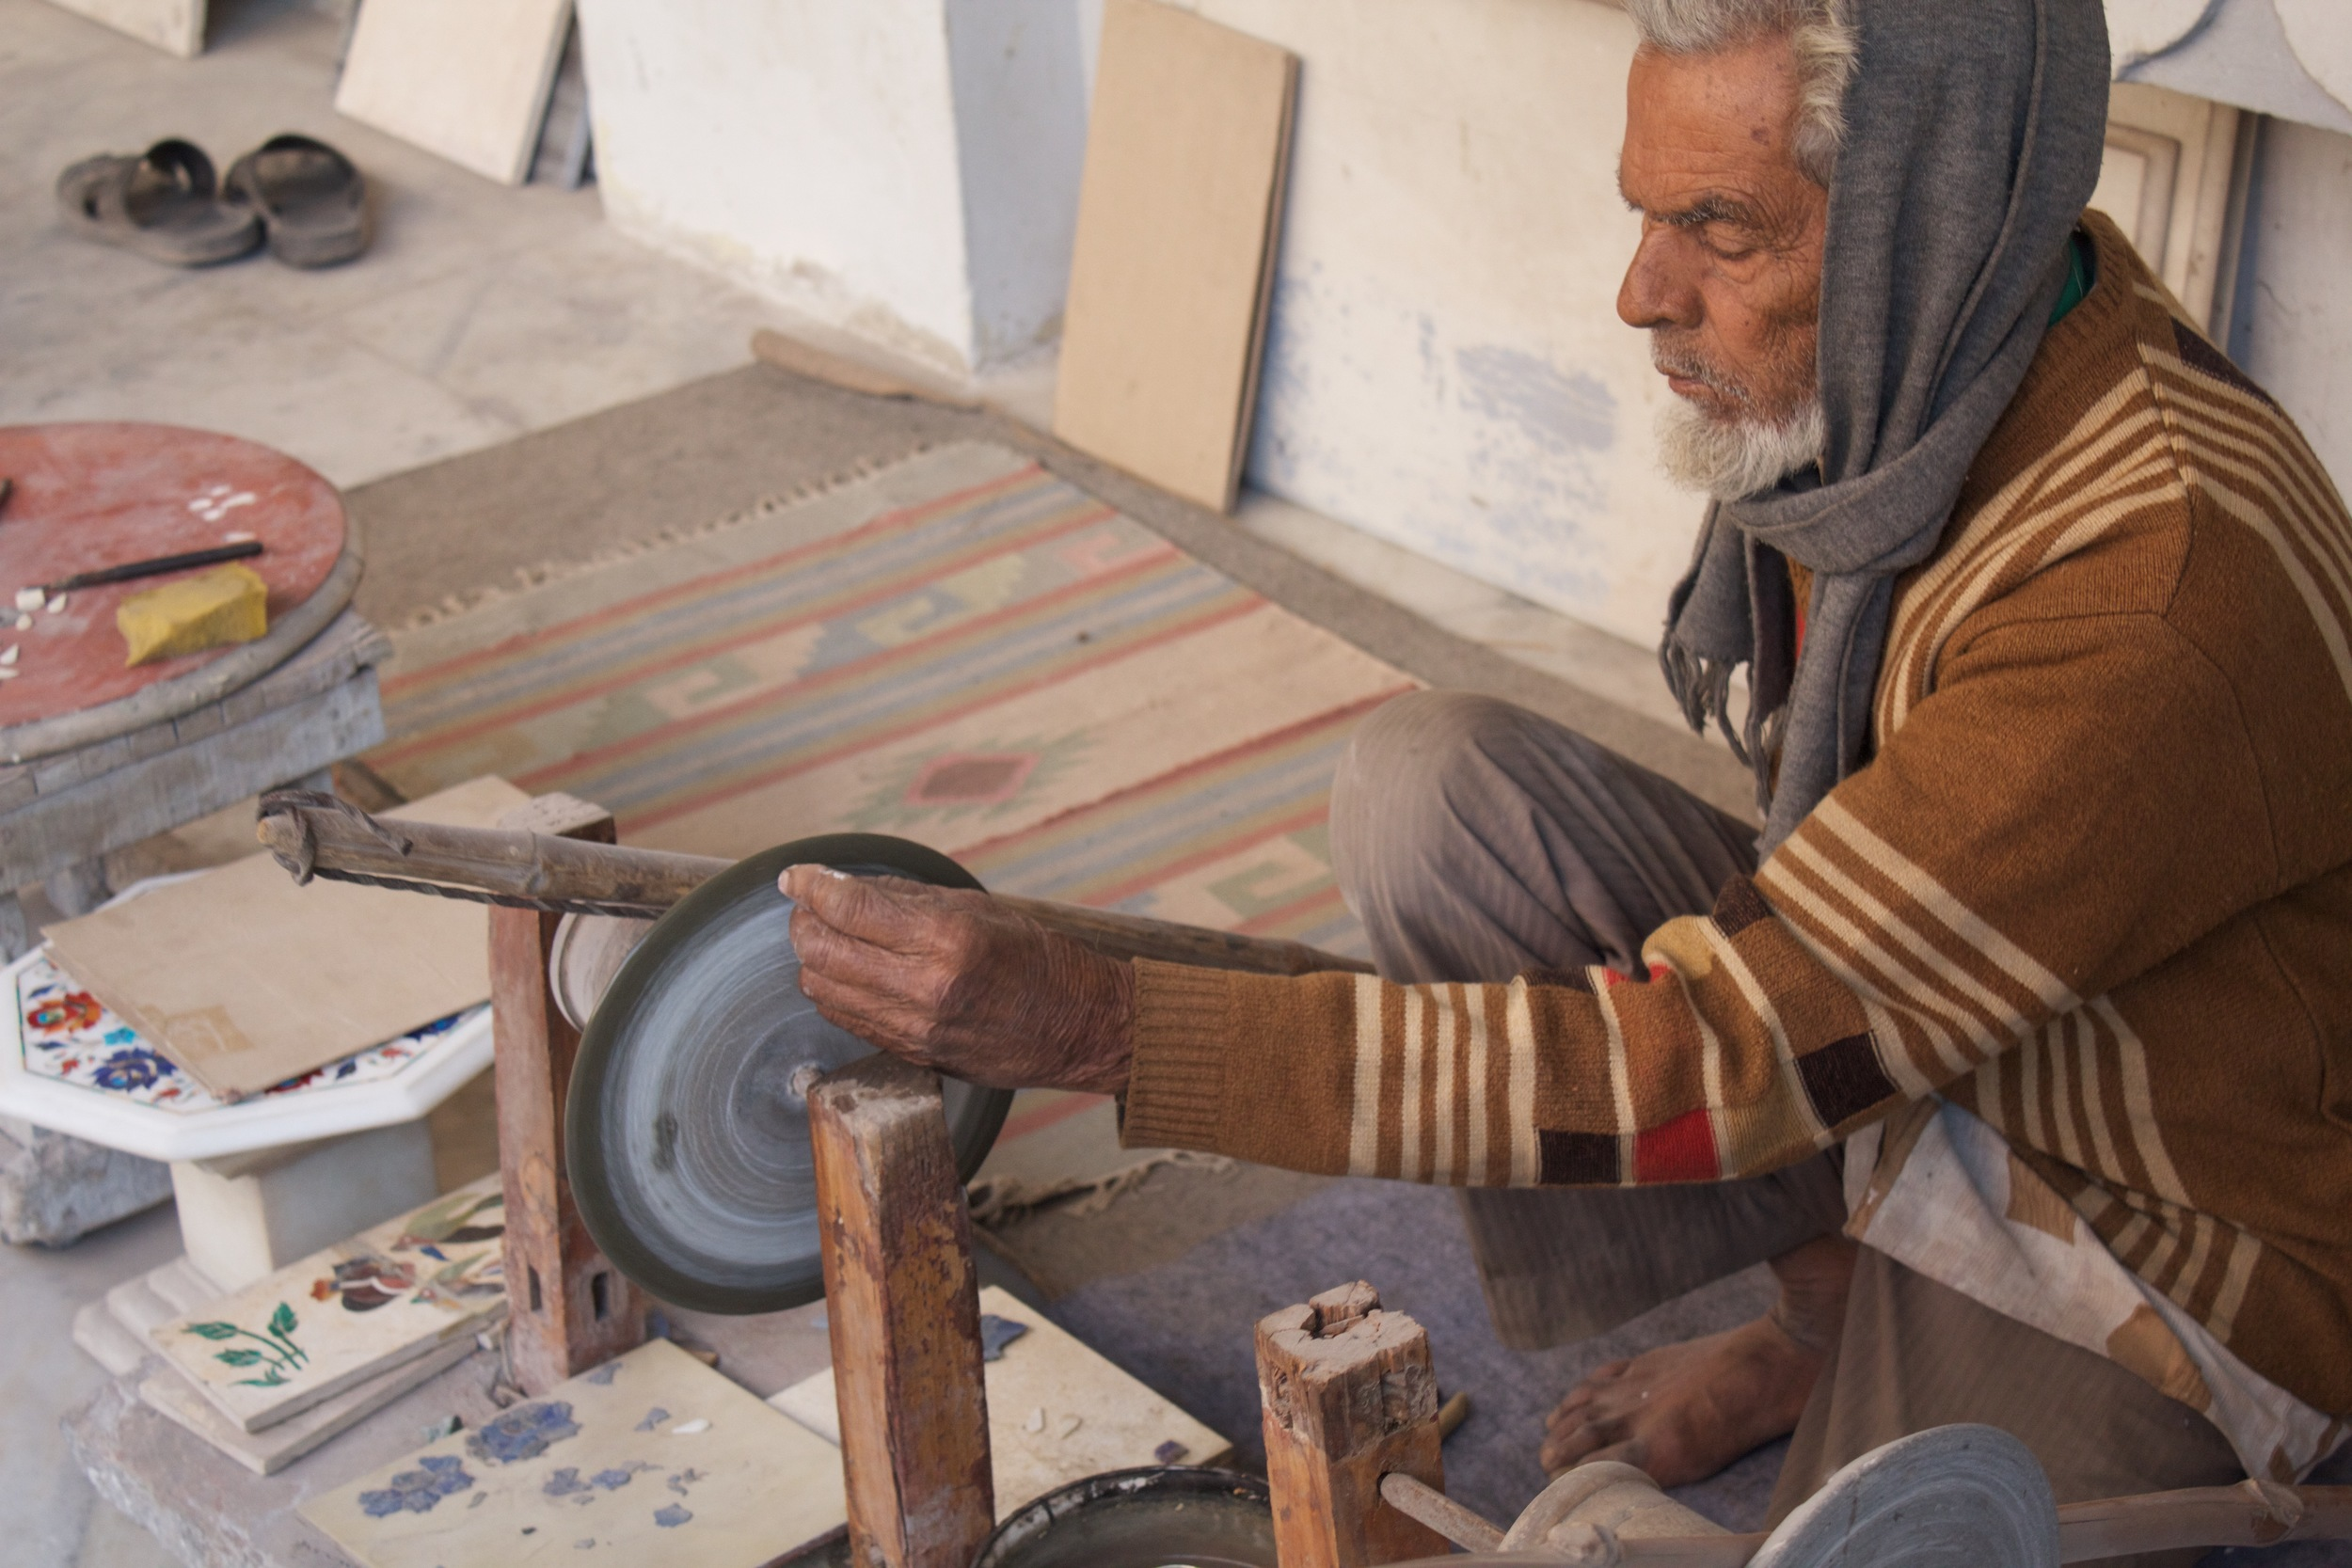 the stone shop out tour guide took us to shop at and where they showed us how they inlaid the stones....